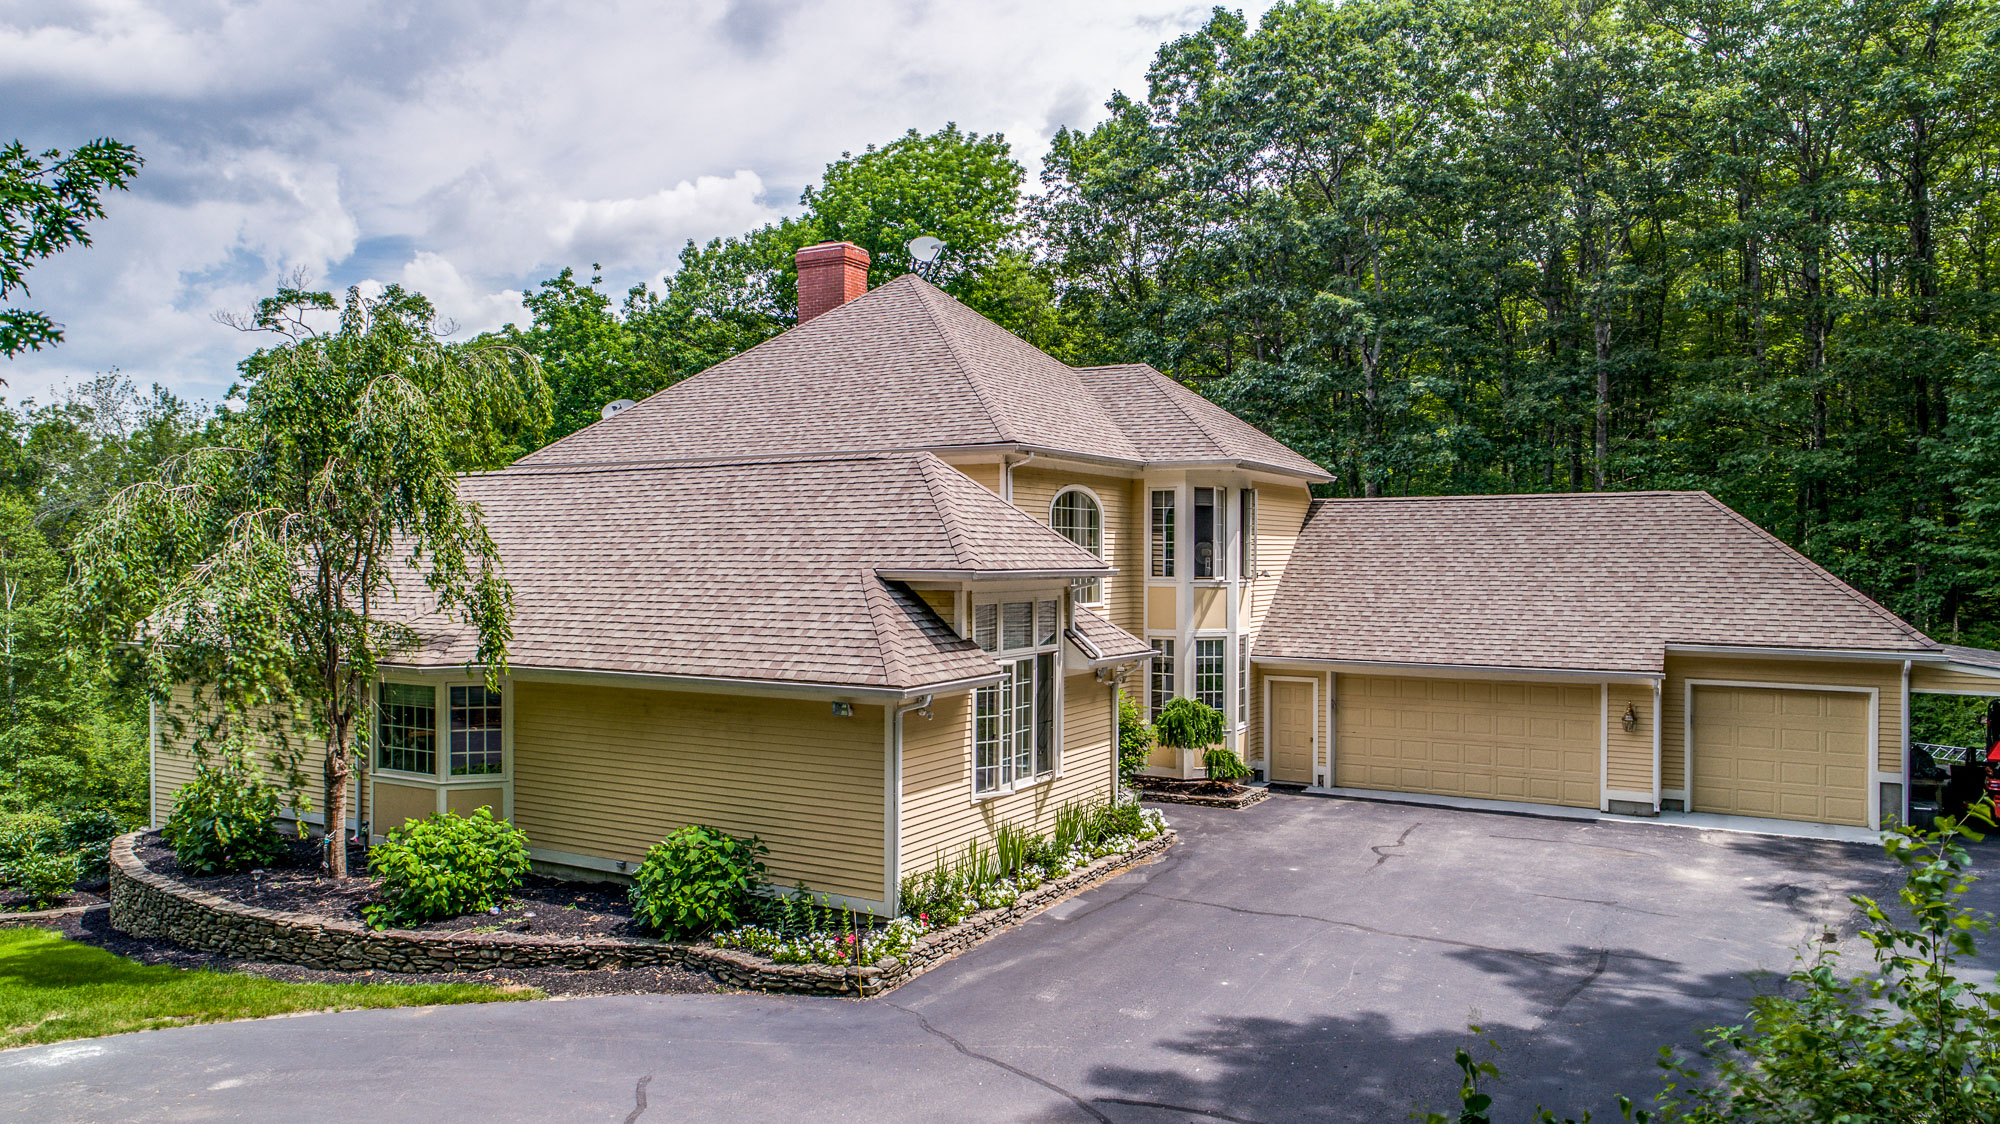 Single Family Home for Sale at Contemporary Waterfront 26 Cobb Road Ashburnham, Massachusetts, 01430 United States